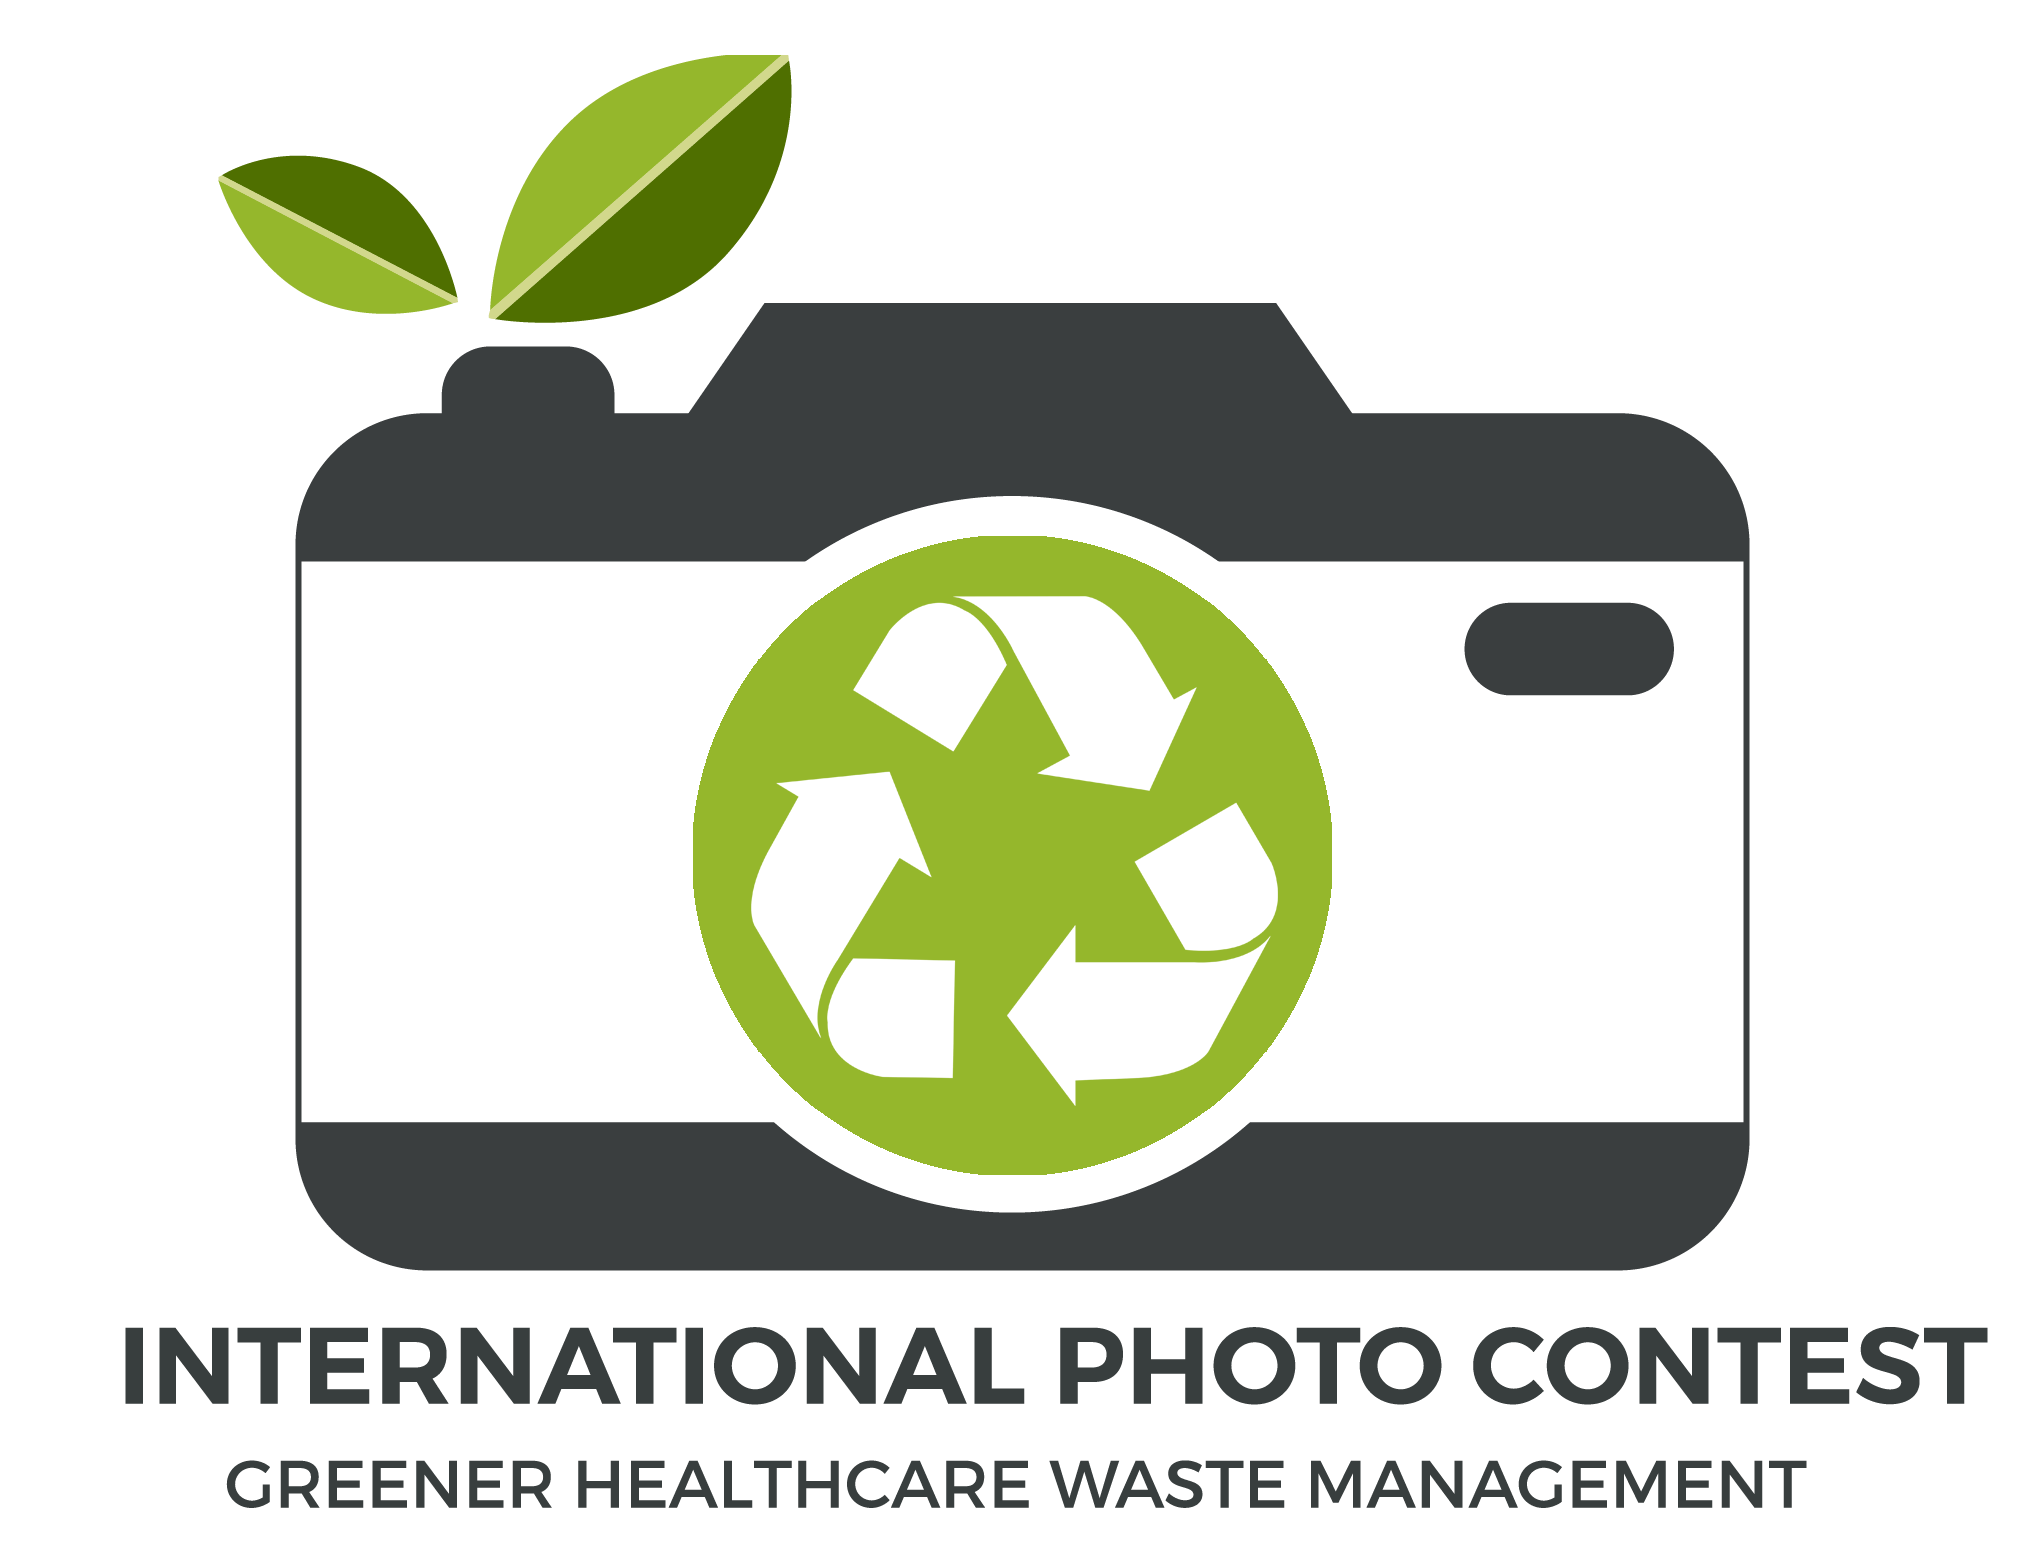 International Photo Contest on Greener Healthcare Waste Management